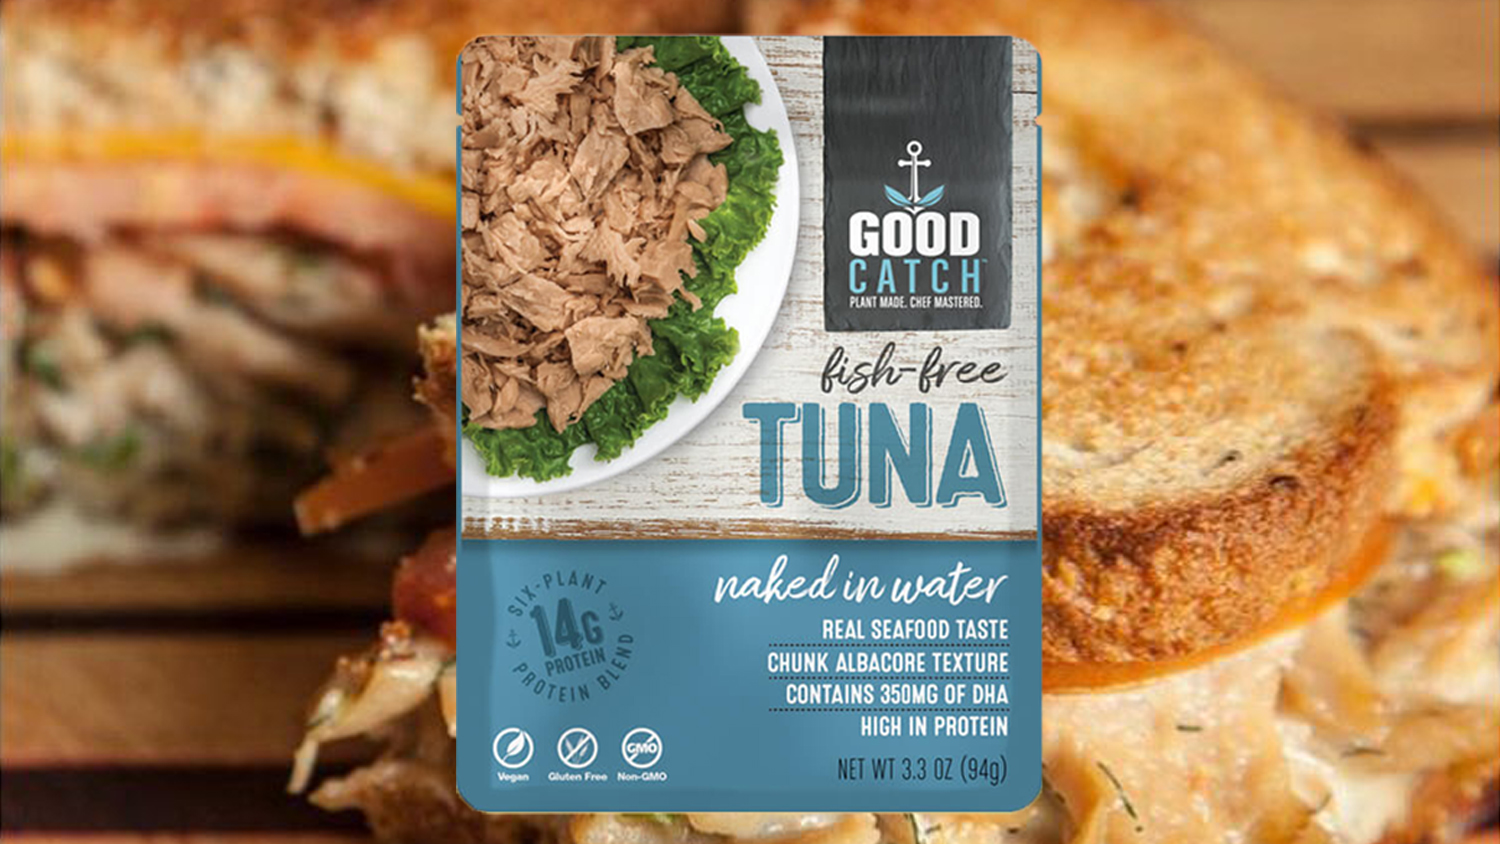 There's No Fish In This Tuna Now at Whole Foods Market